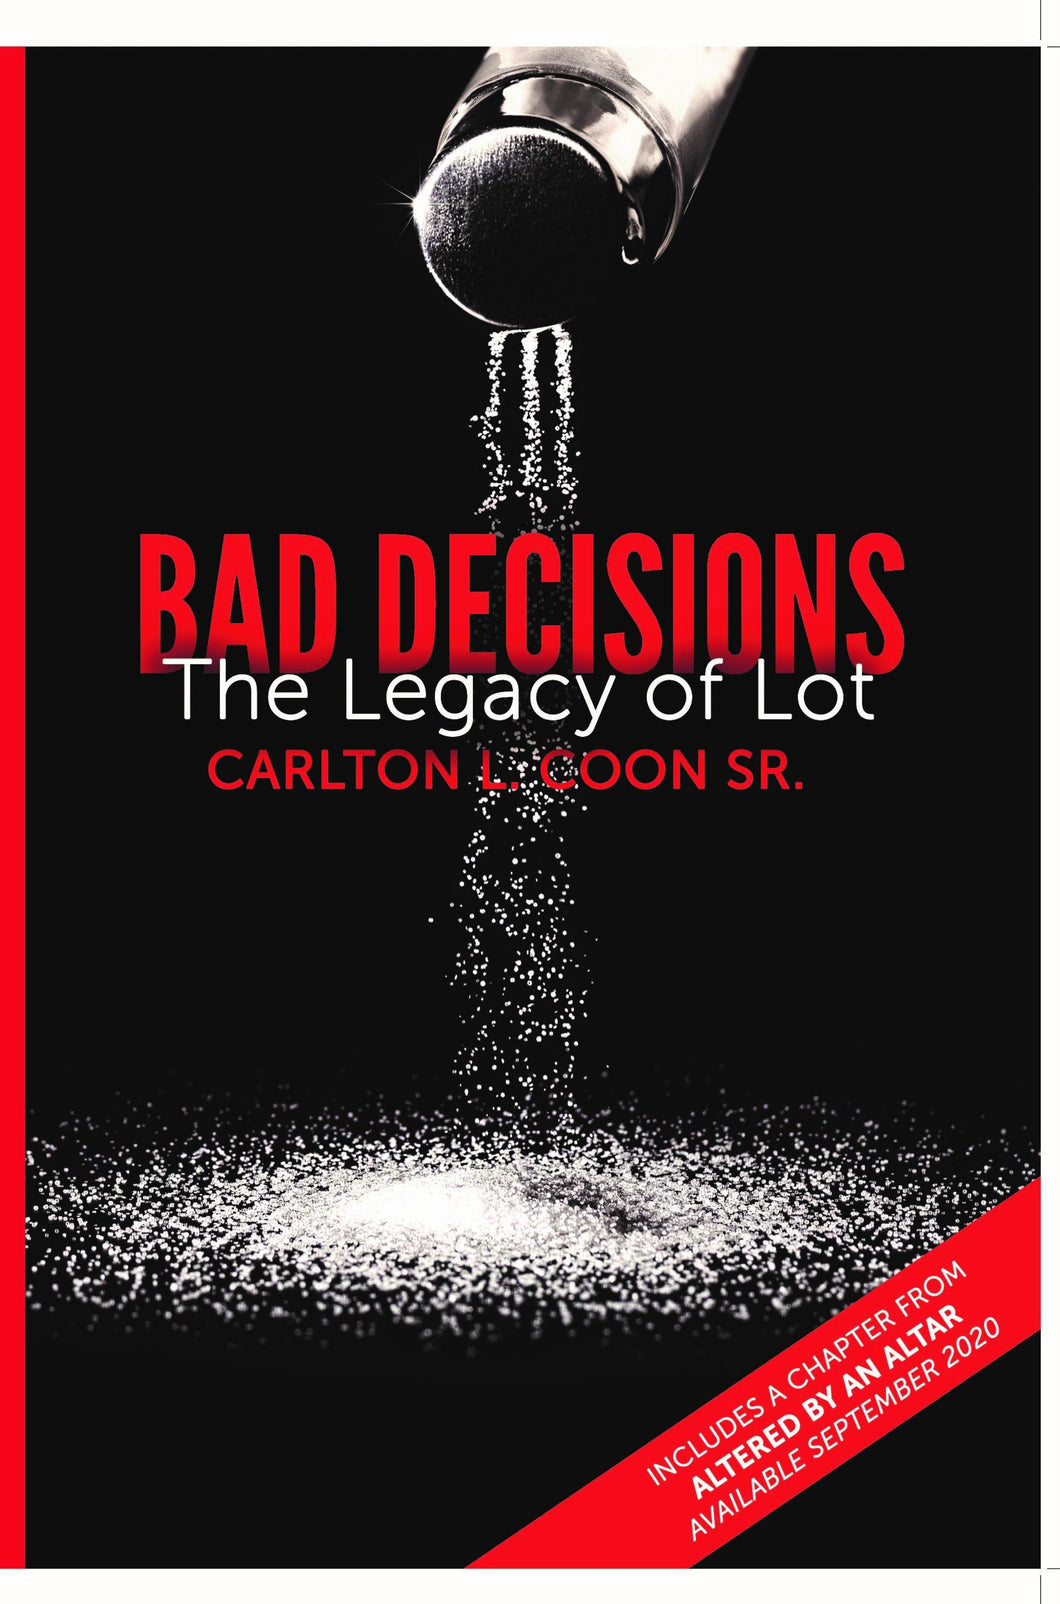 Bad Decisions - The Legacy of Lot